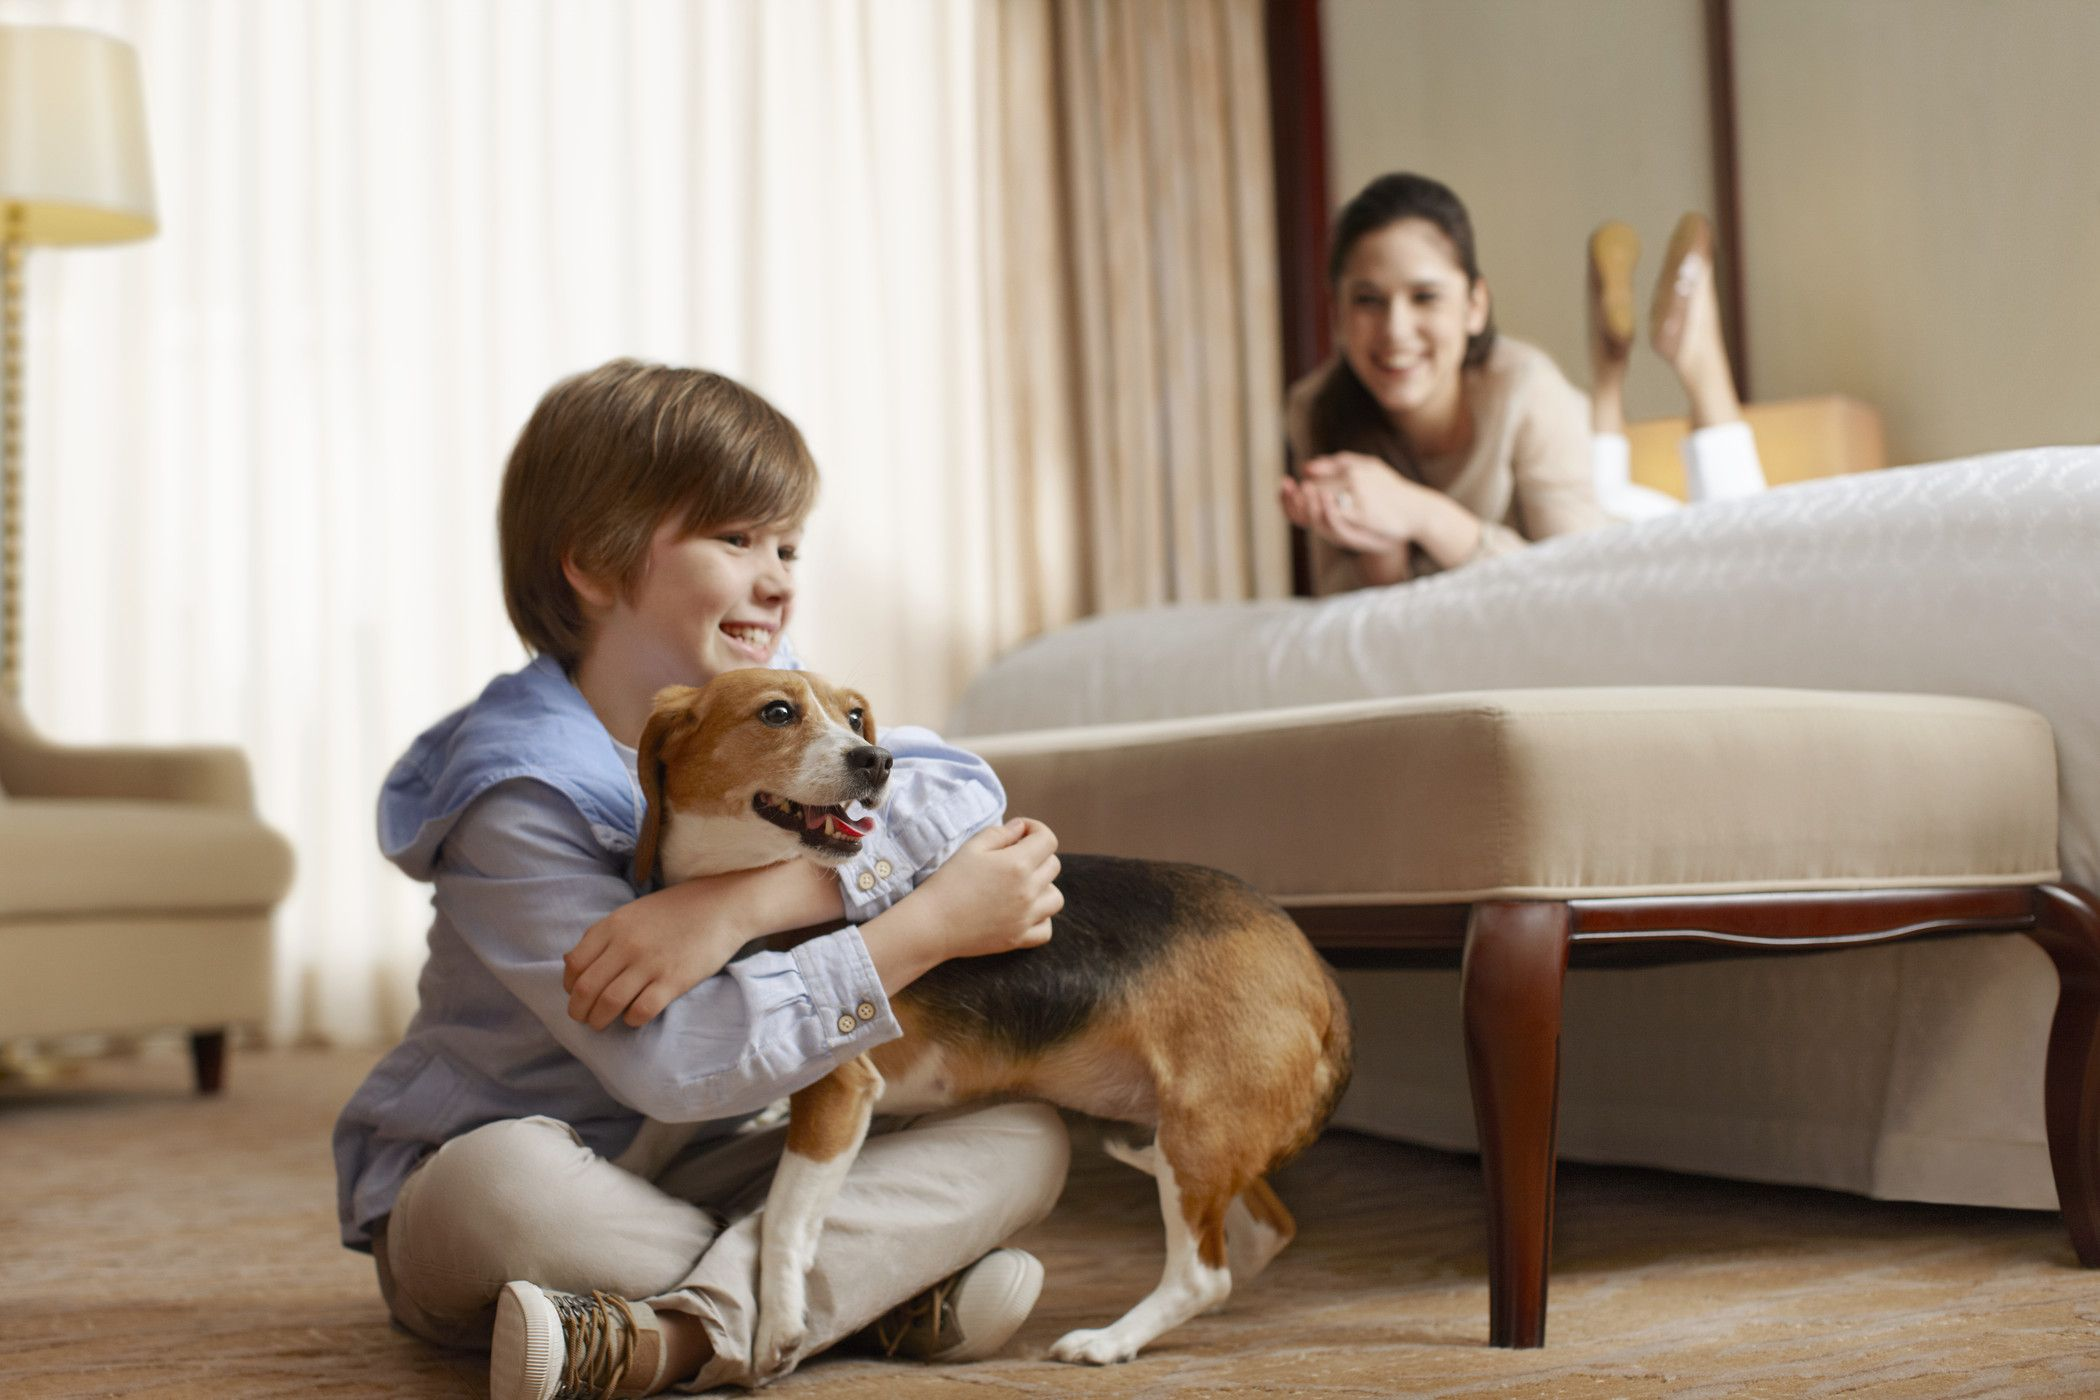 Sheraton Roanoke Hotel & Conference Center - Pet Friendly